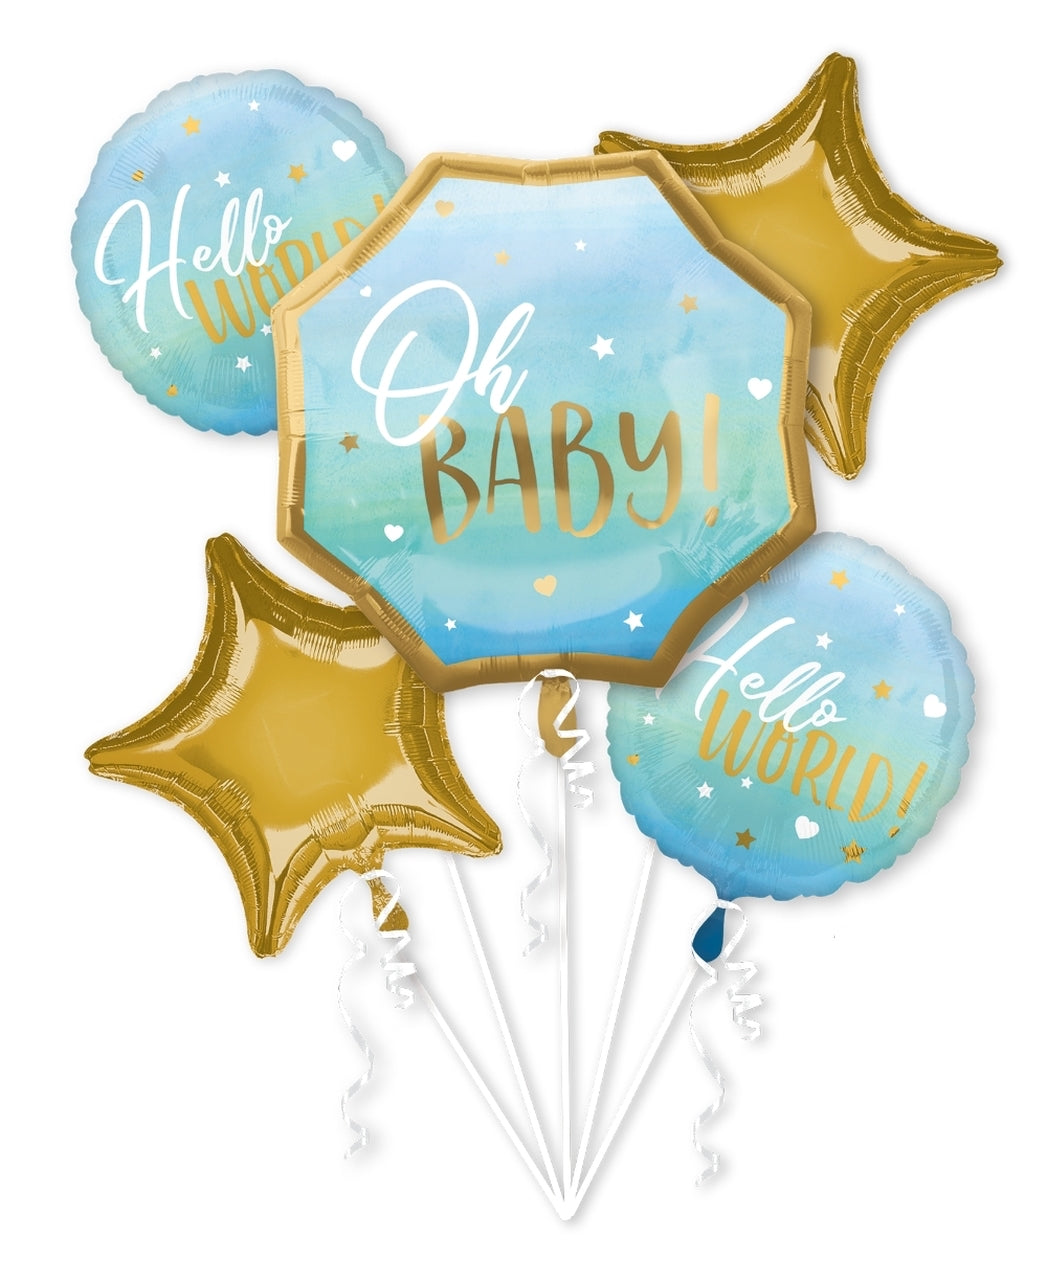 Hello World! Baby Boy Balloons (Extra Deluxe Bouquet) Baby Shower/Baby Birthday Party